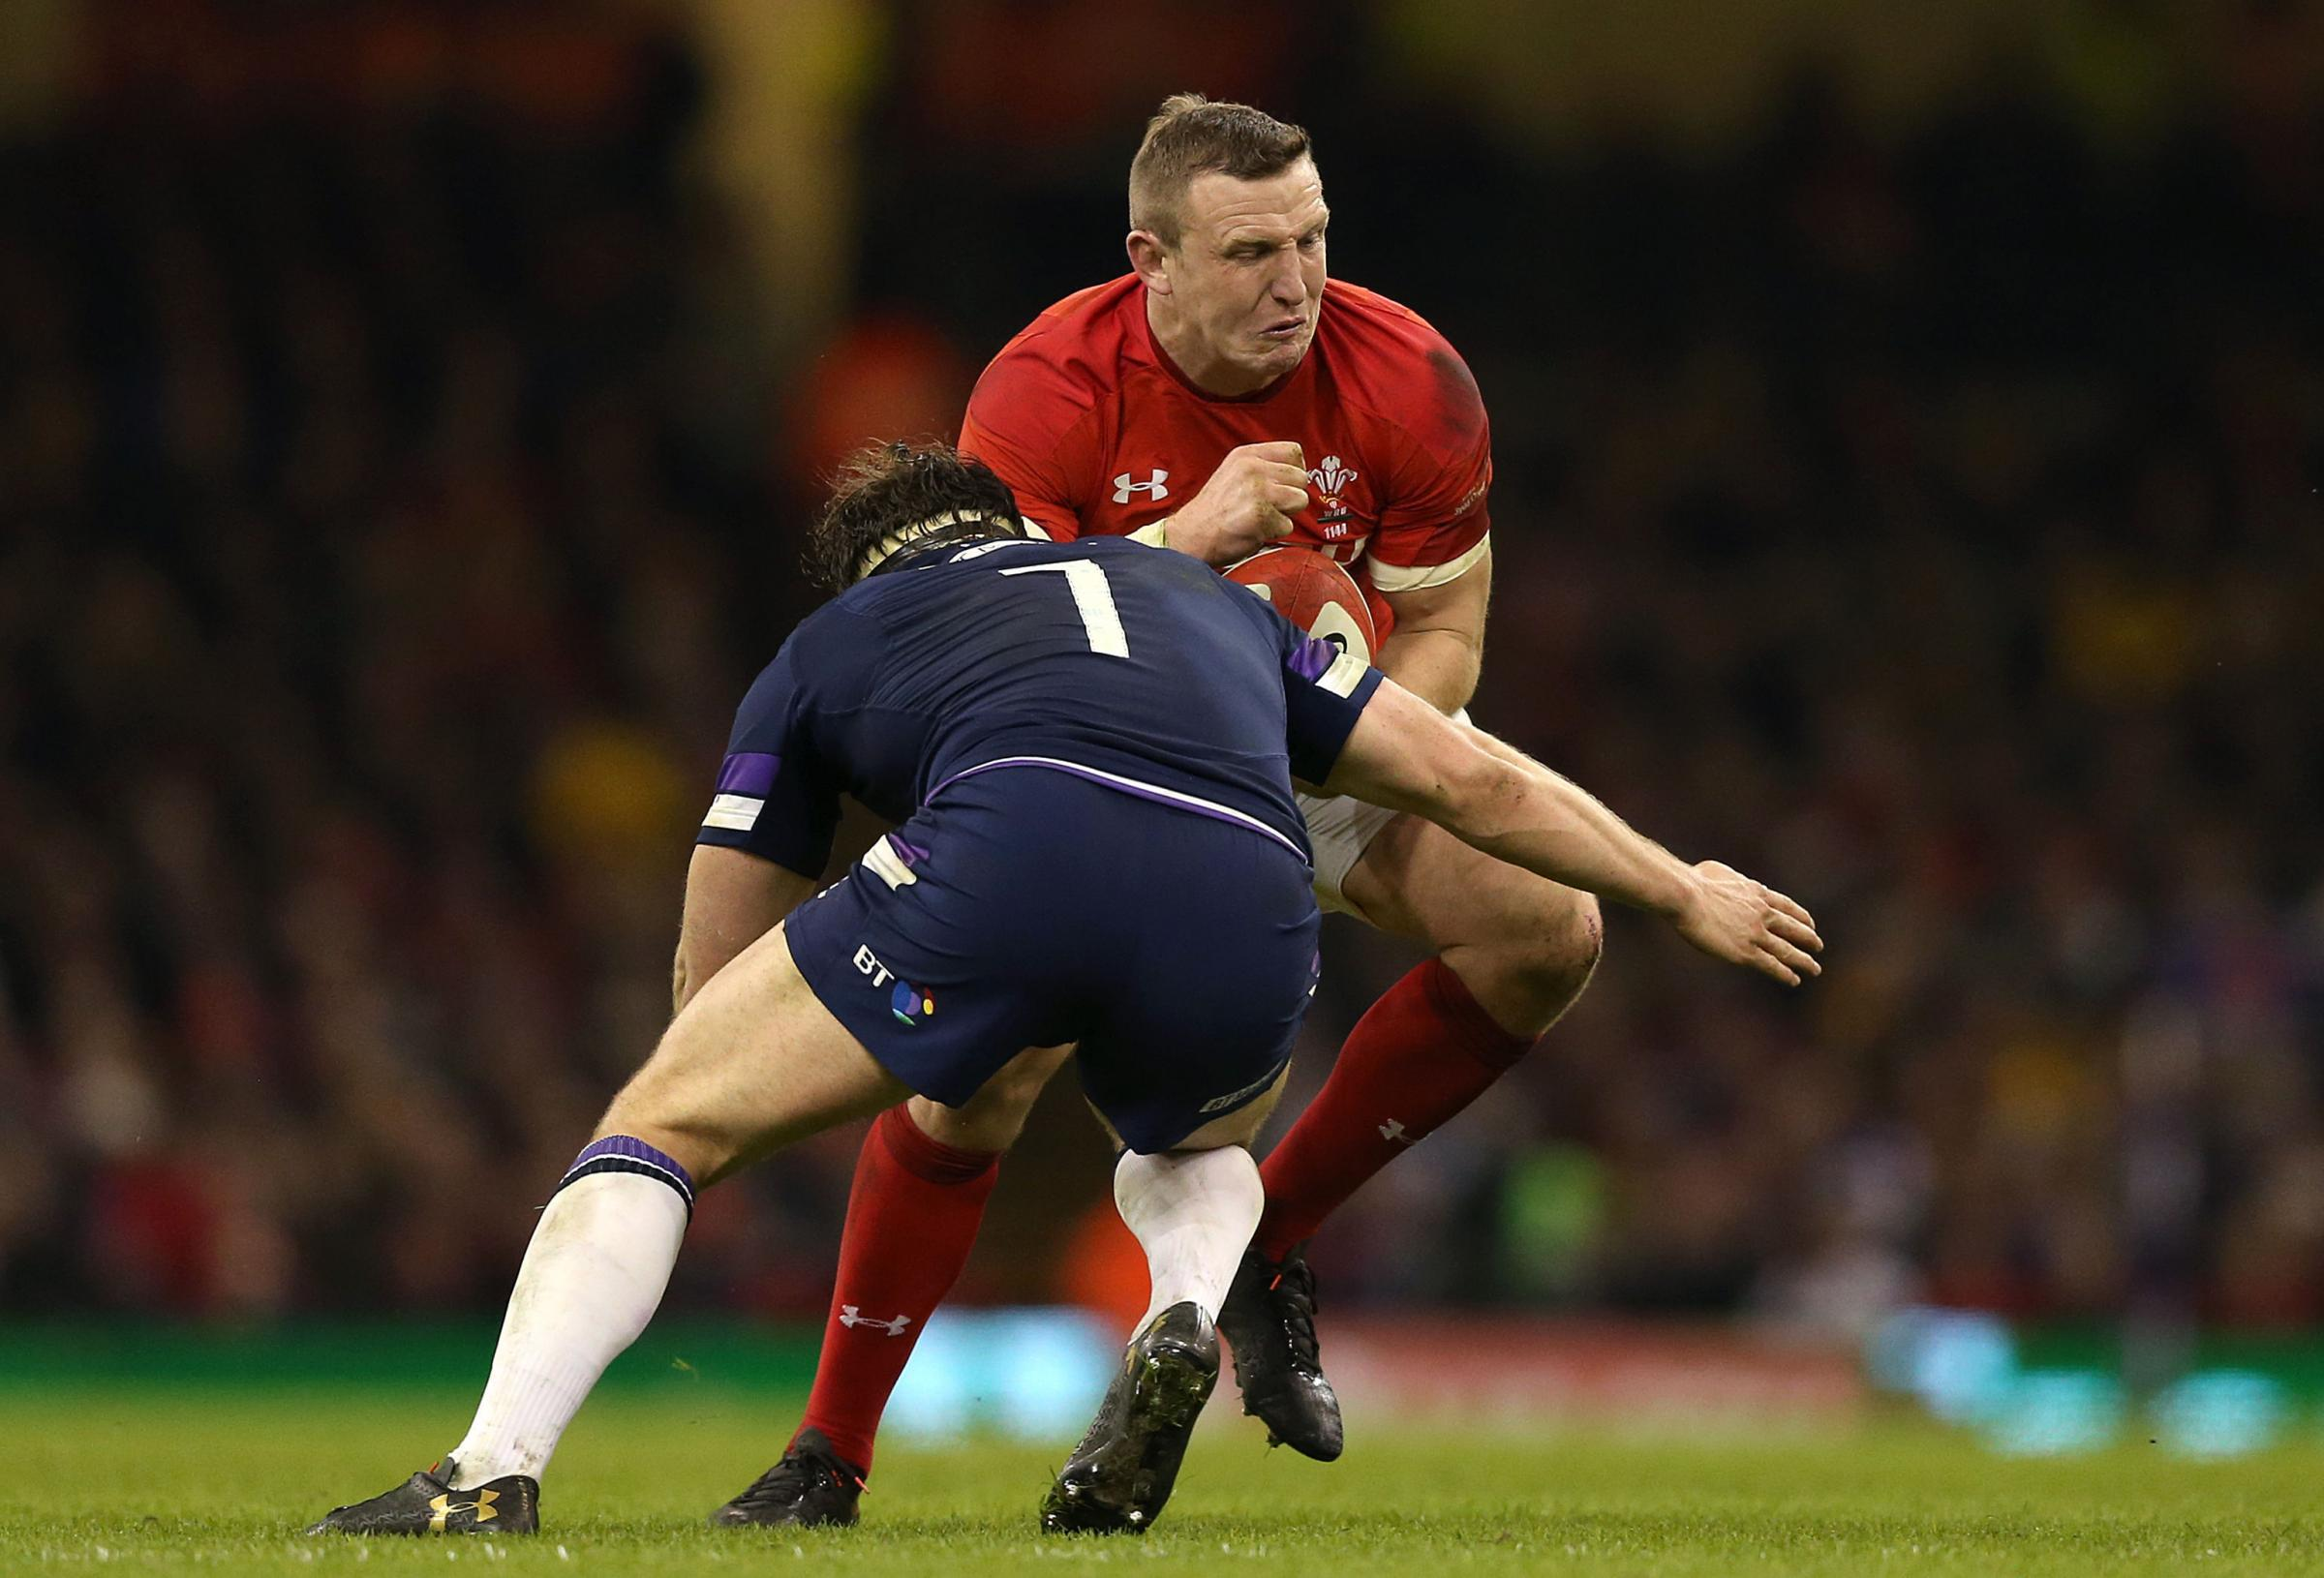 Wales' Hadleigh Parkes (right) in action with Scotland's Hamish Watson during the NatWest 6 Nations match at the Principality Stadium, Cardiff. PRESS ASSOCIATION Photo. Picture date: Saturday February 3, 2018. See PA story RUGBYU Wales. Photo cred